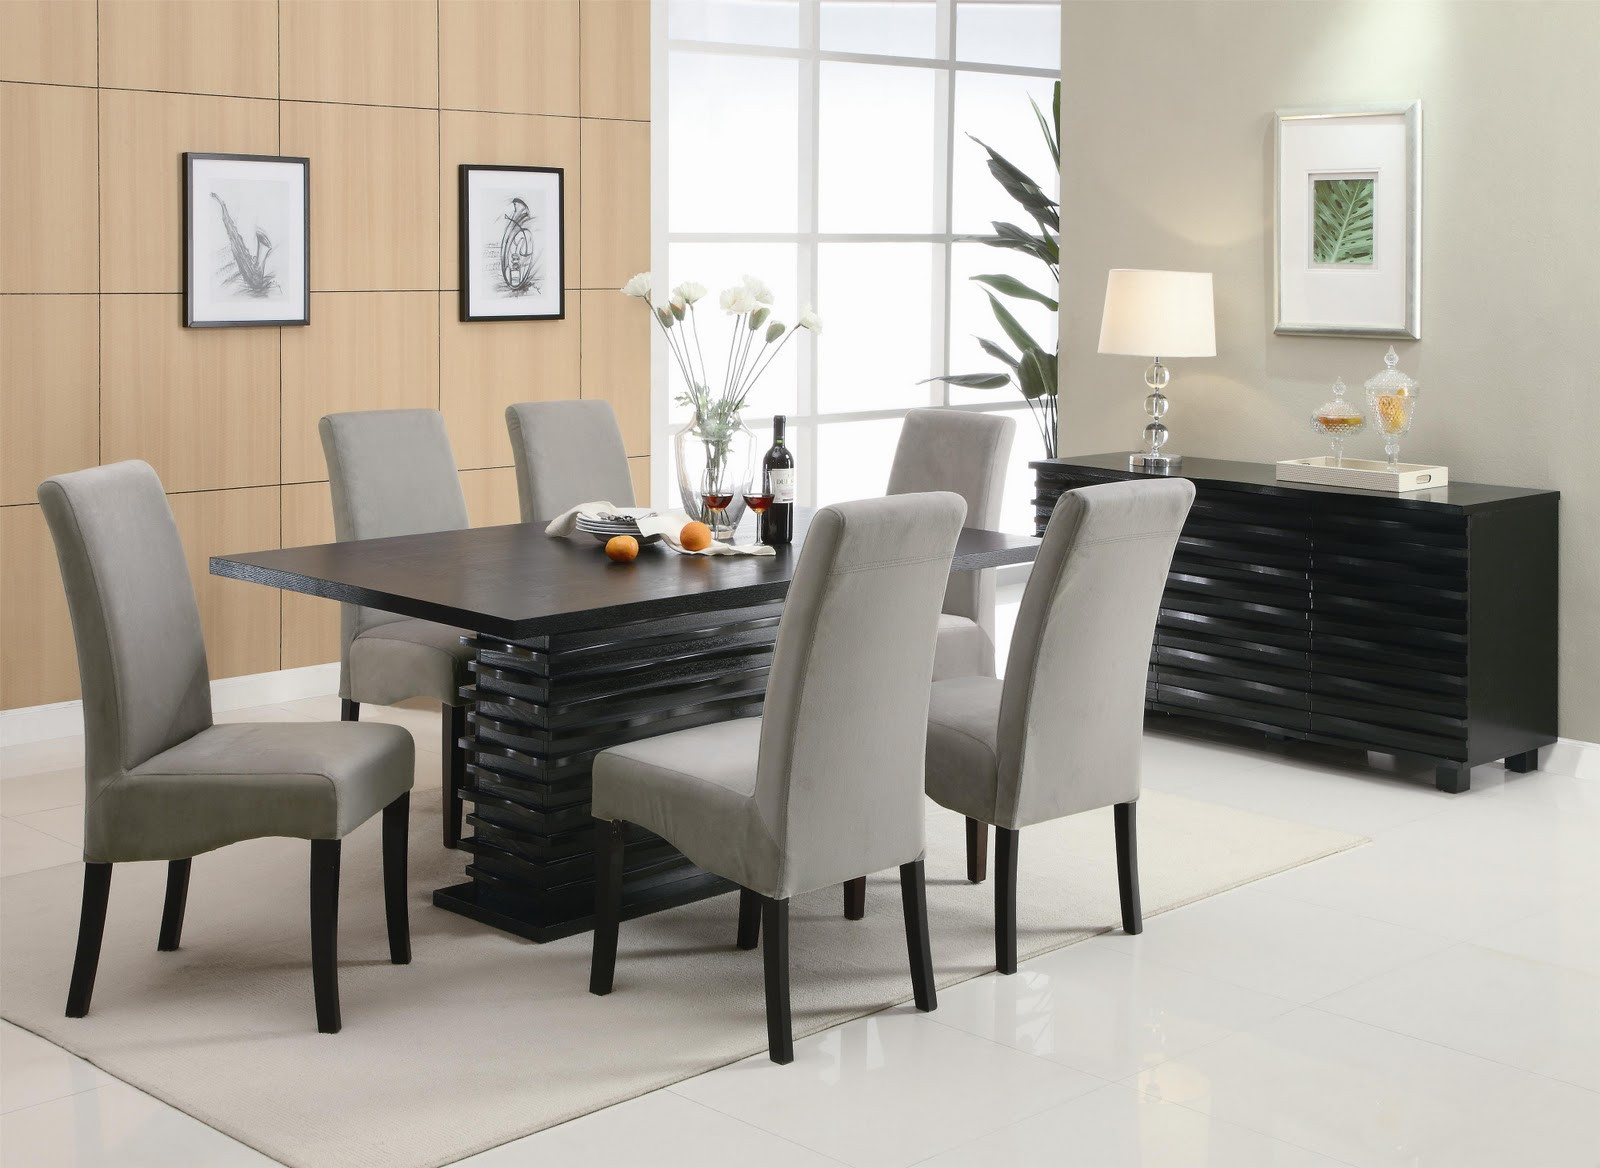 Best ideas about Modern Dining Room Chairs . Save or Pin Dining Room Now.